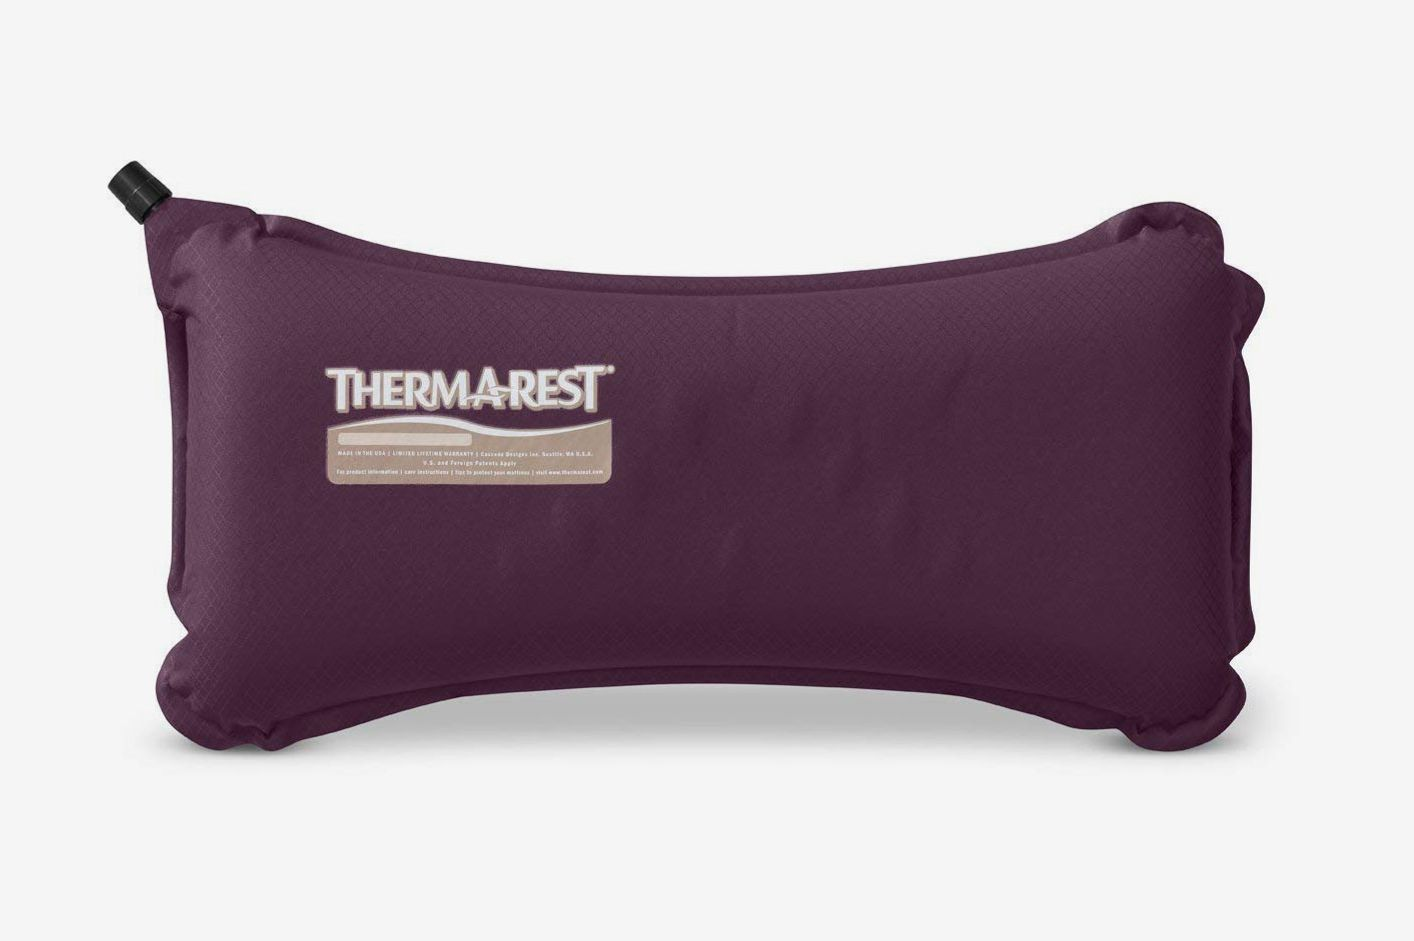 Therm-a-Rest Lumbar Travel Pillow